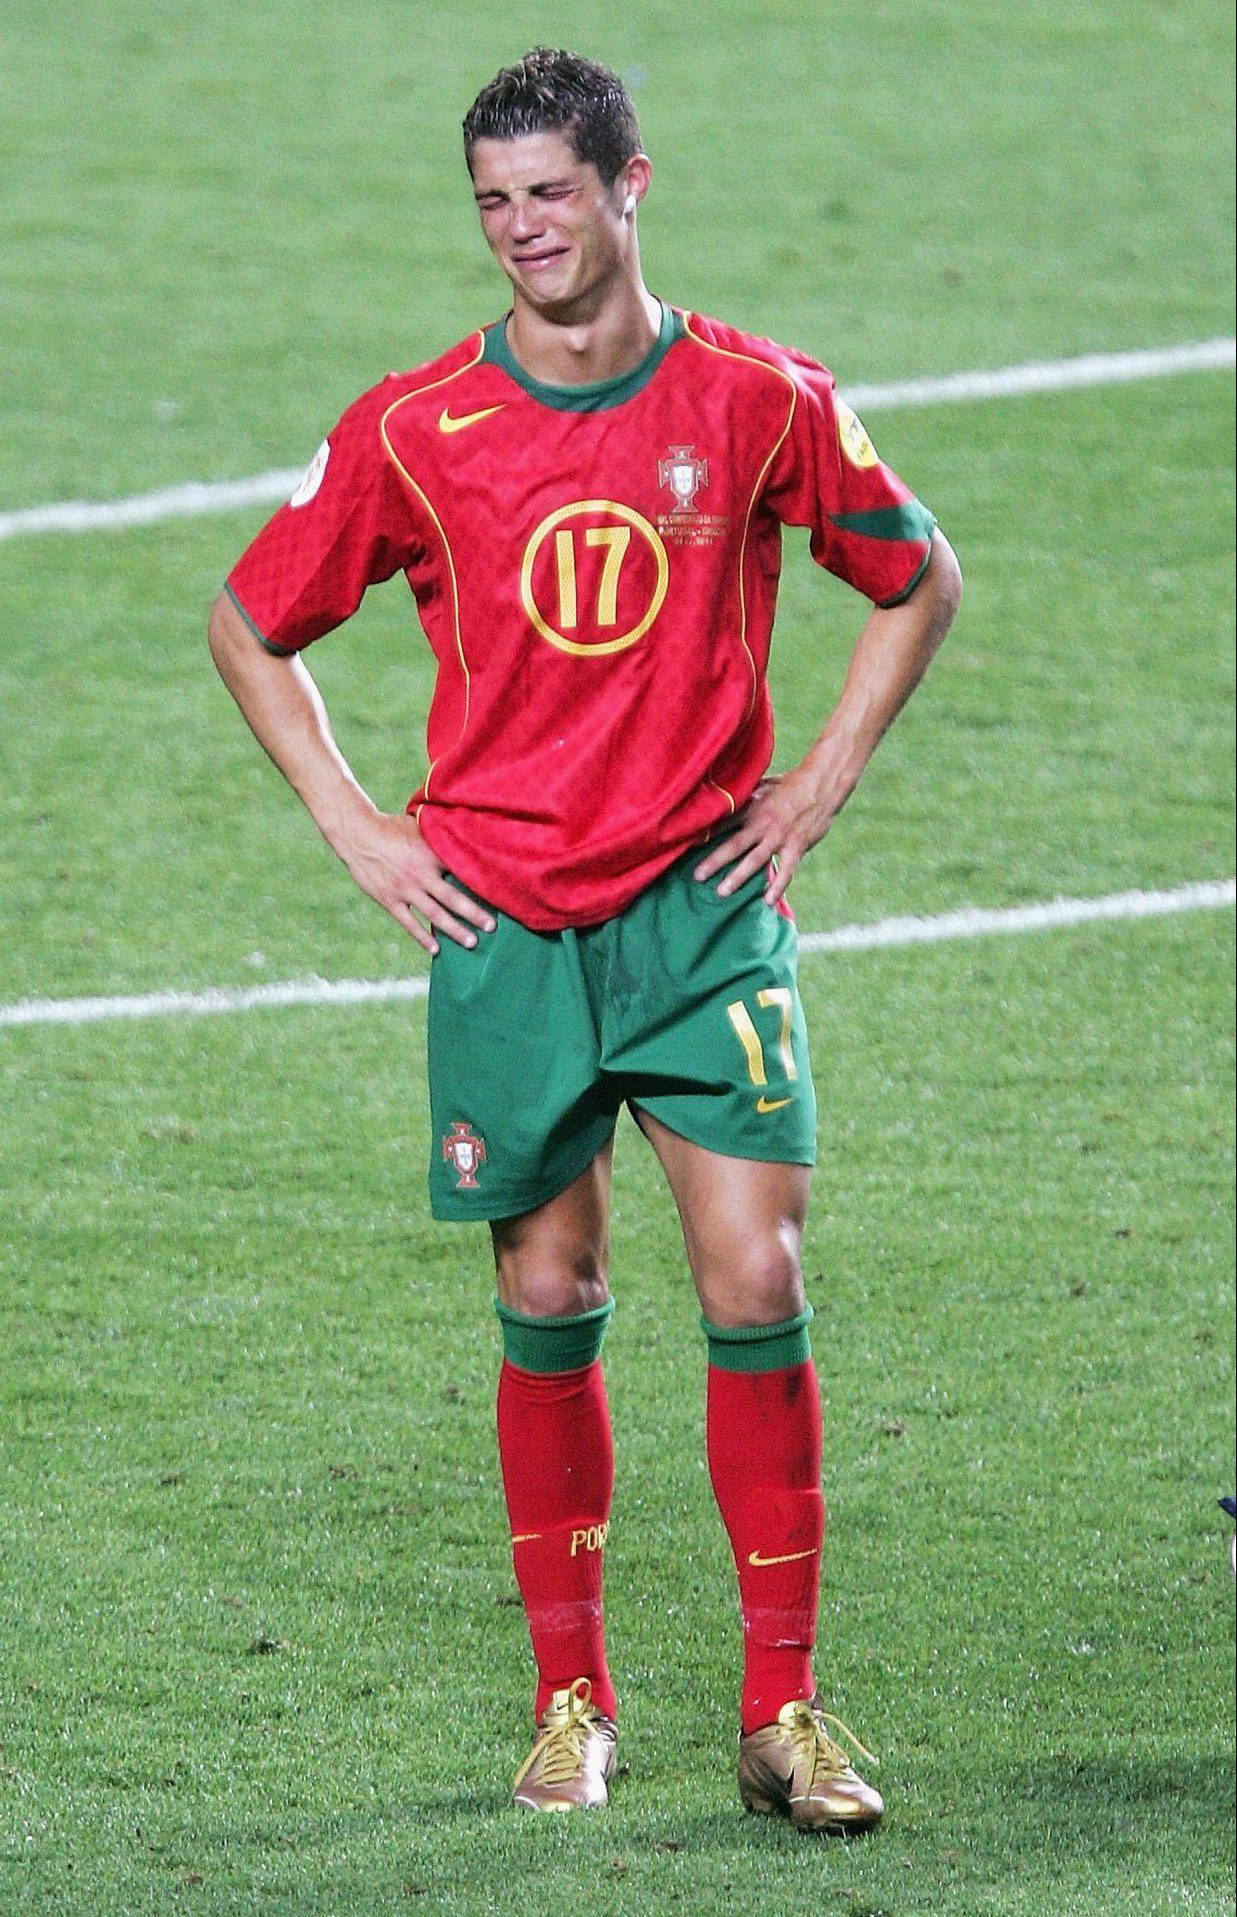 Cristiano Ronaldo shed a few tears after losing the Euro 2004 final